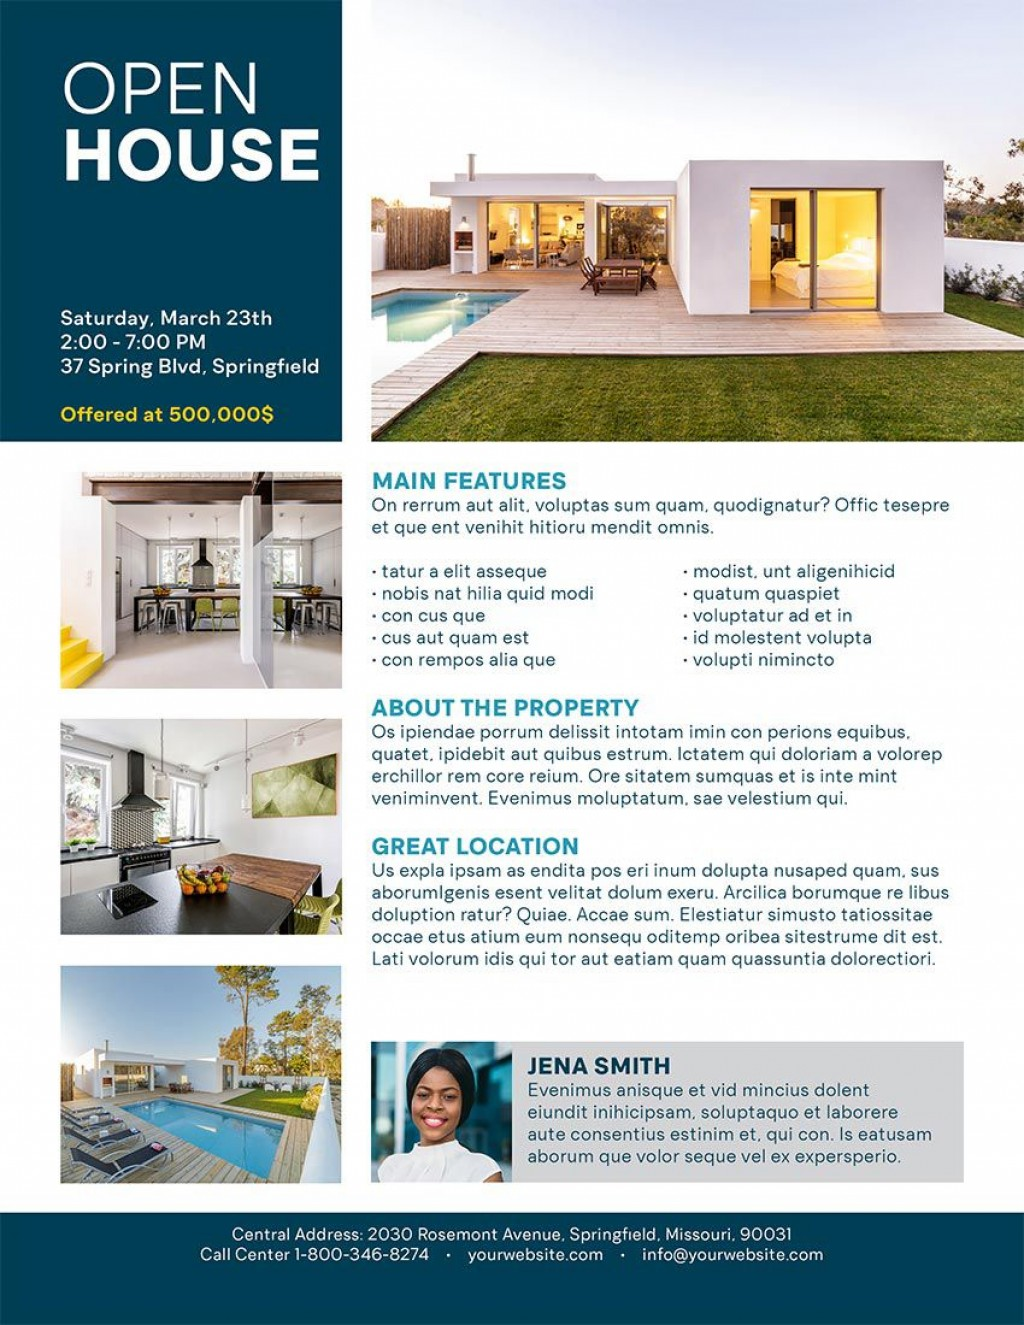 001 Archaicawful Open House Flyer Template Example  Templates Word Free Microsoft Real EstateLarge